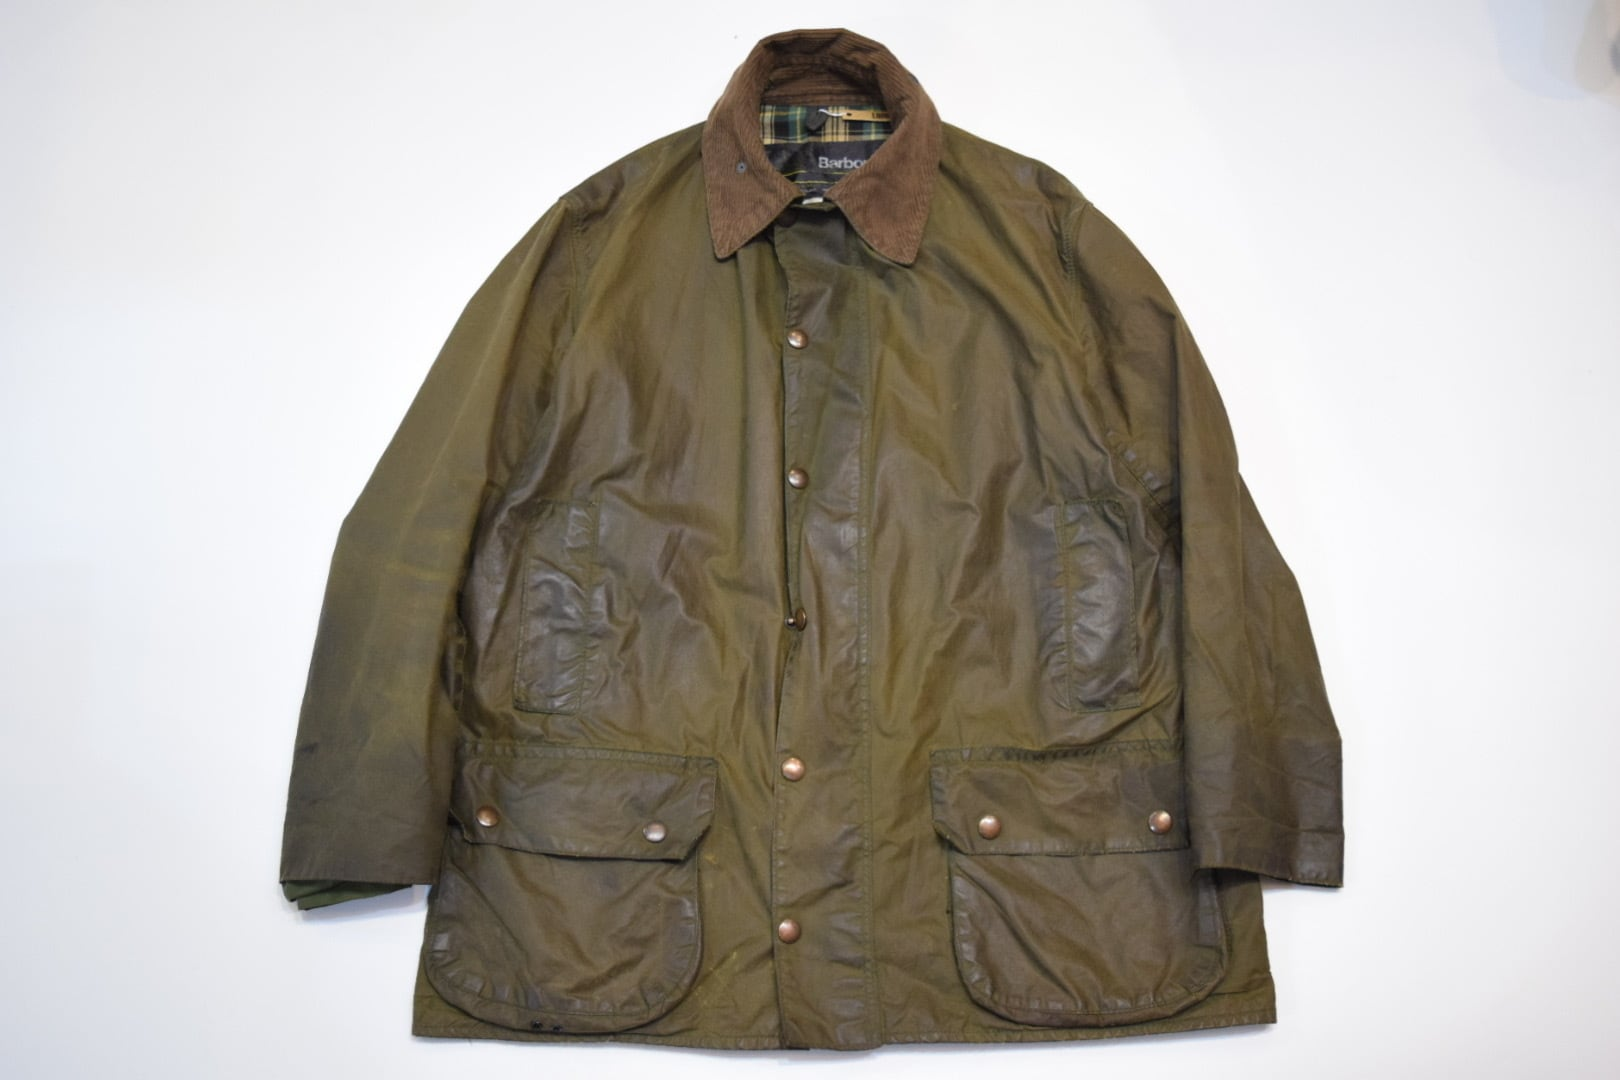 USED 80s Barbour BEAUFORT -42 01193